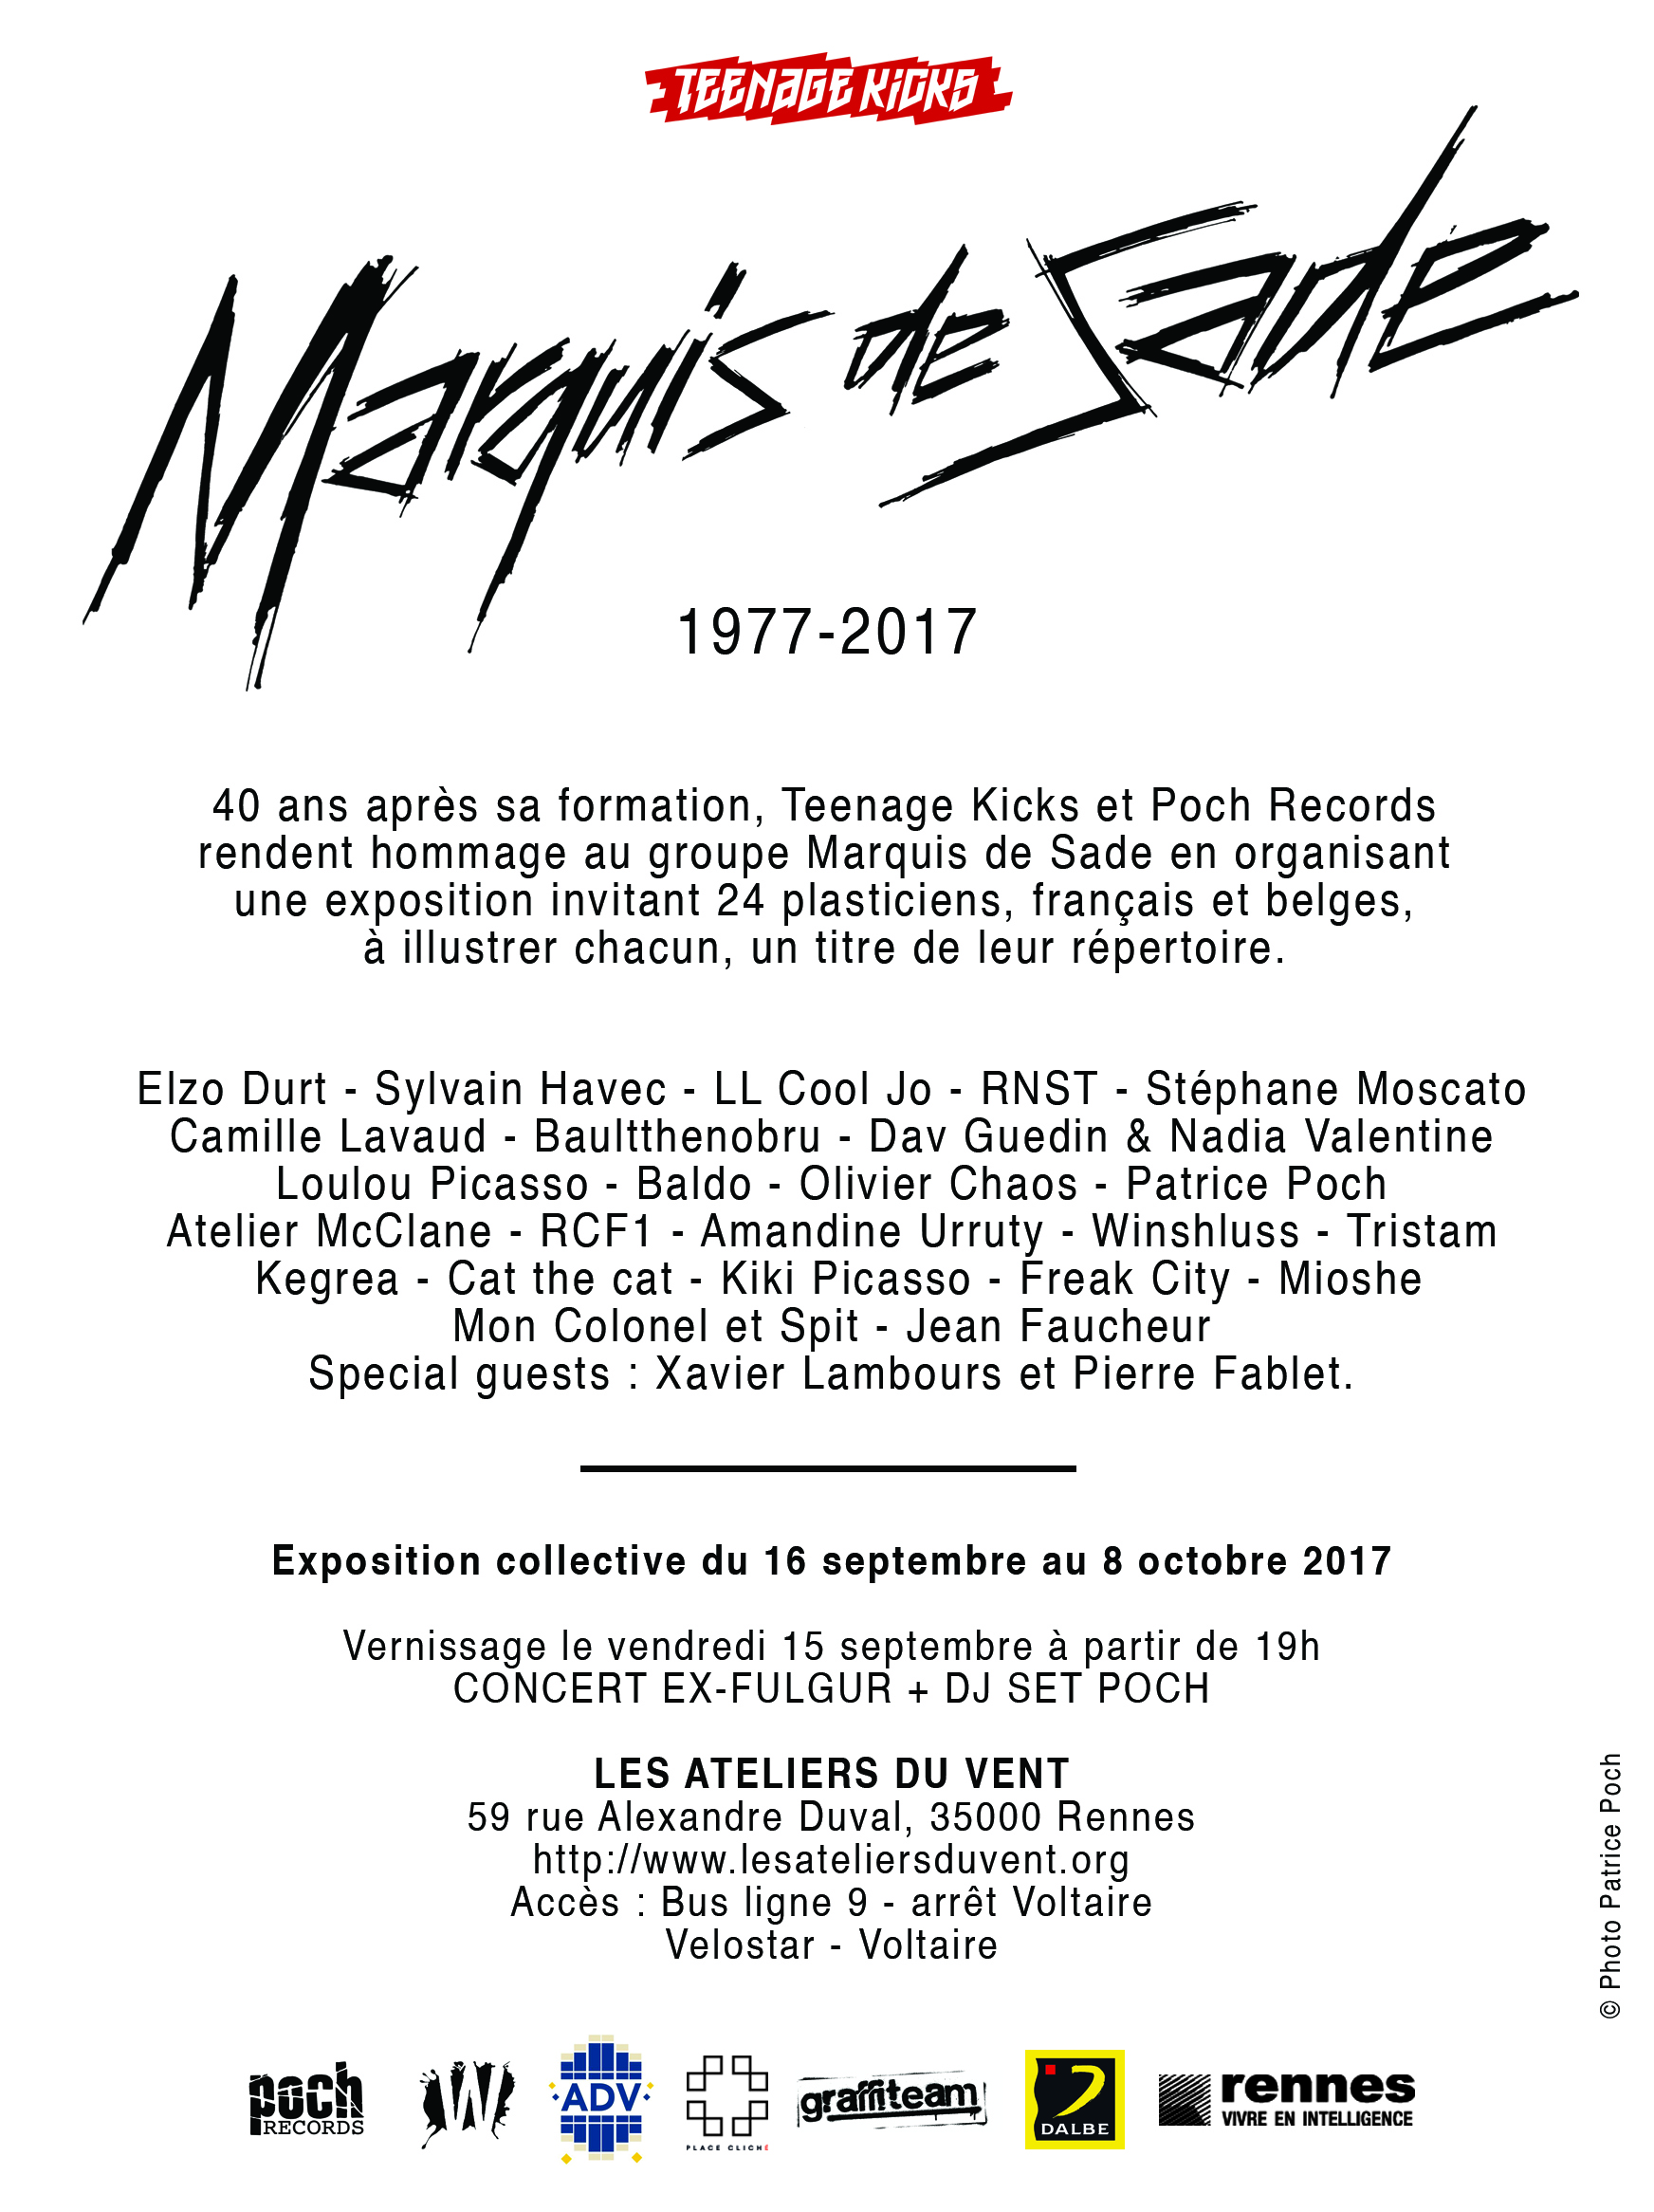 News - 2017 - Flyer Verso - Marquis de Sade - Teenage Kicks et Poch Records